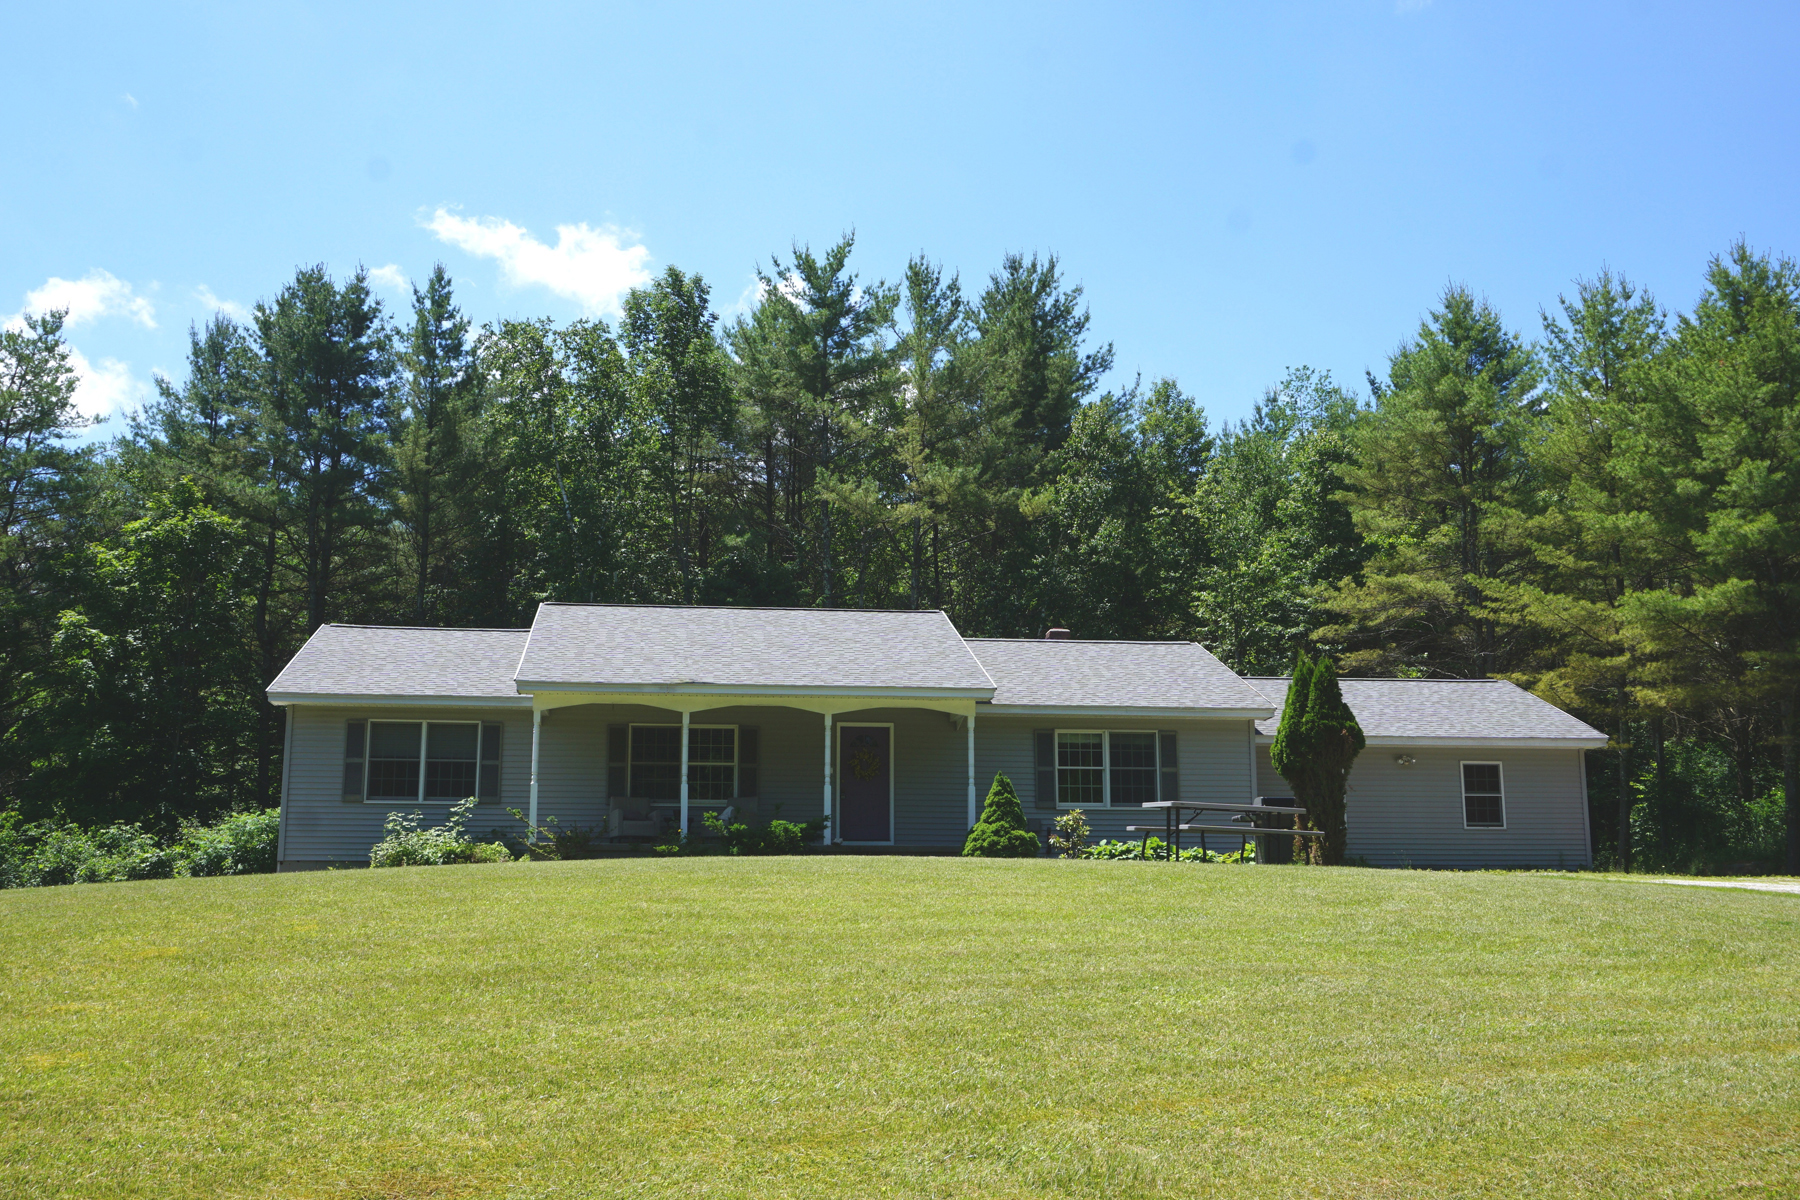 Single Family Homes for Sale at Rutland Town - 3 Acres 22 Springbrook Pl Rutland Town, Vermont 05701 United States